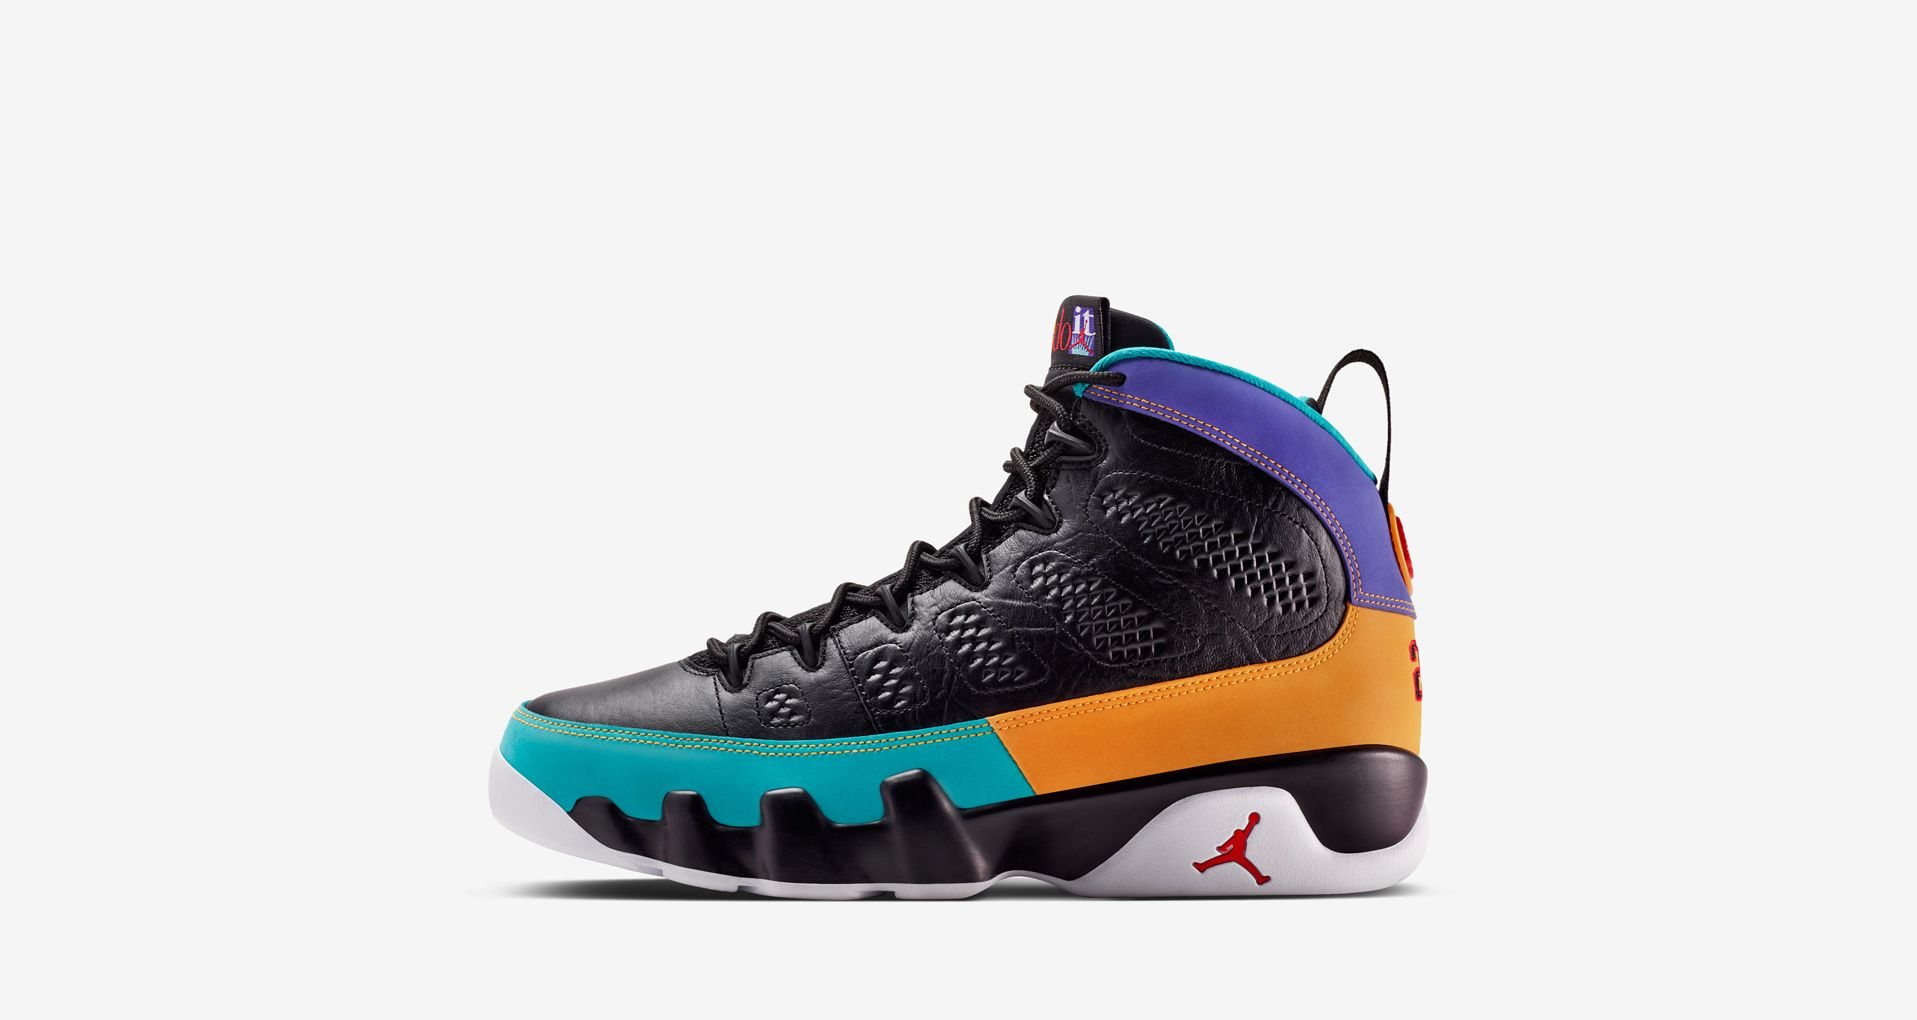 factory price 3b5b6 1696c Air Jordan 9 'Black & Dark Concord & Canyon Gold' Release ...